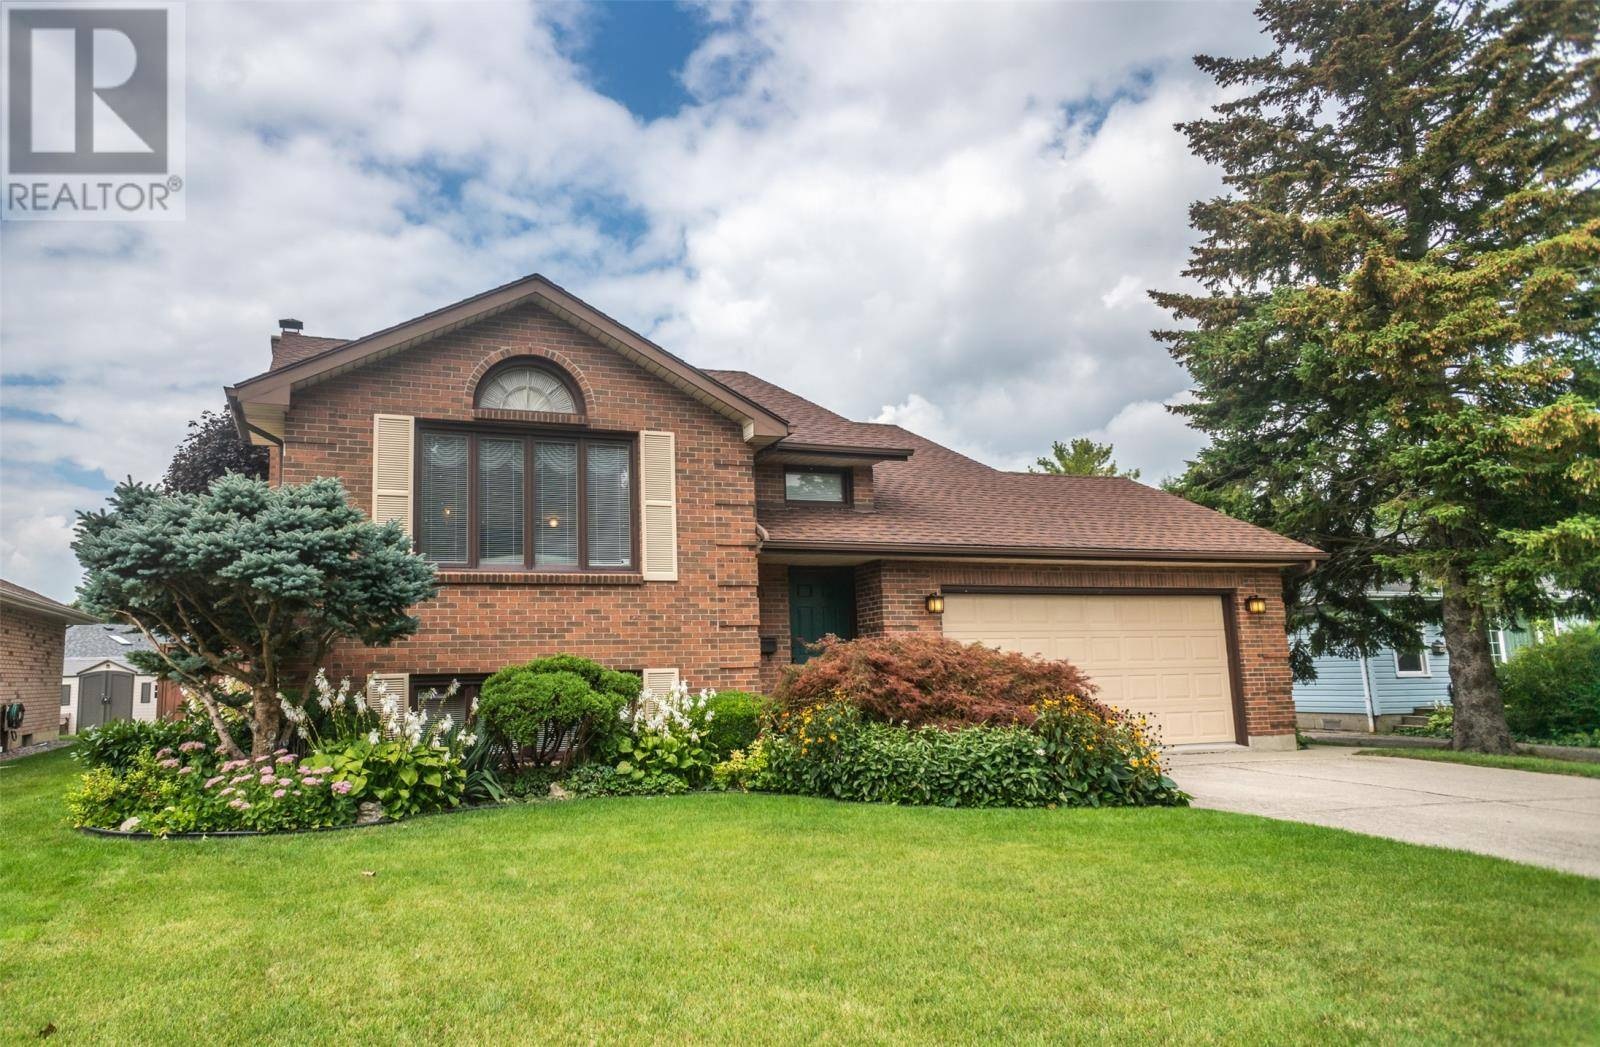 House for sale at 63 Oxley Dr Chatham Ontario - MLS: 19025409